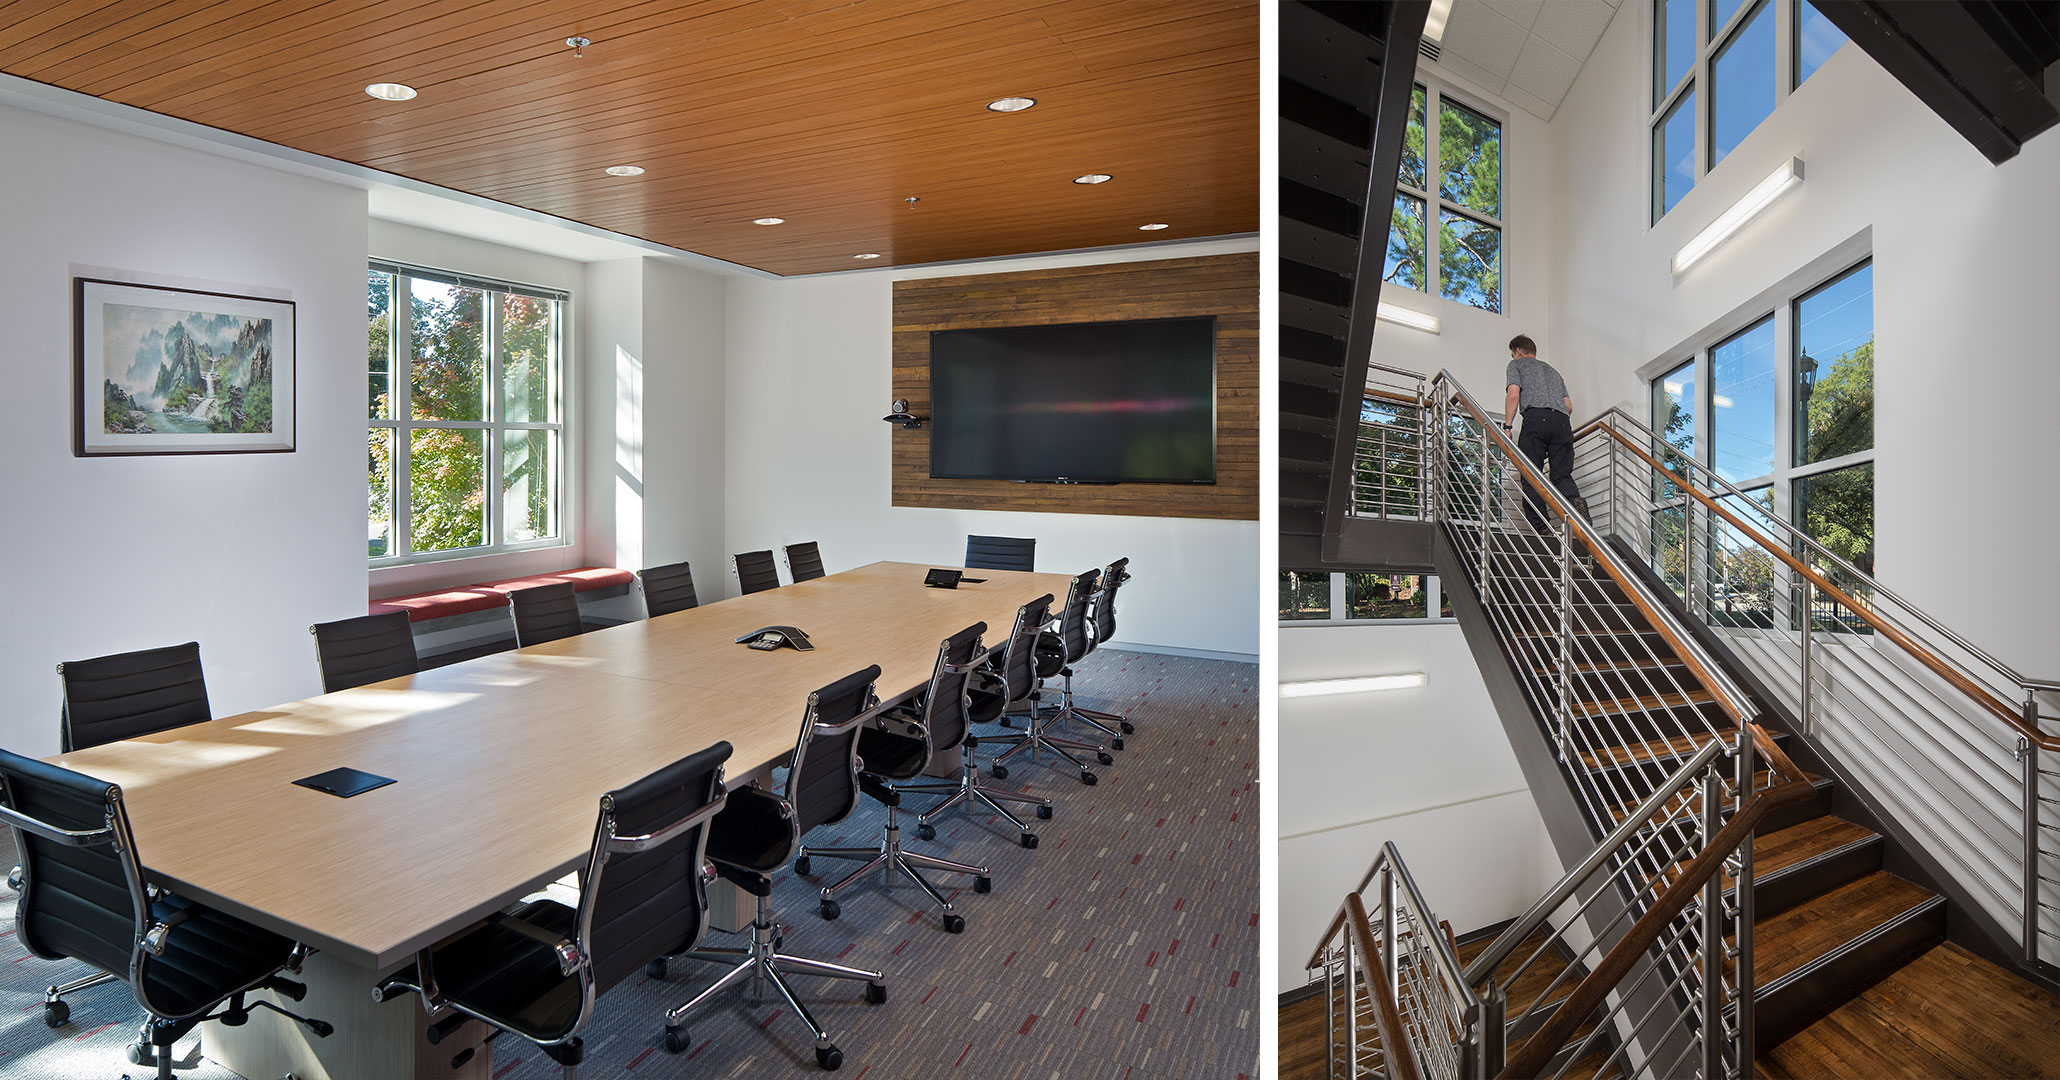 University of South Carolina worked with Boudreaux architects to design classrooms in the historic Hamilton College building.